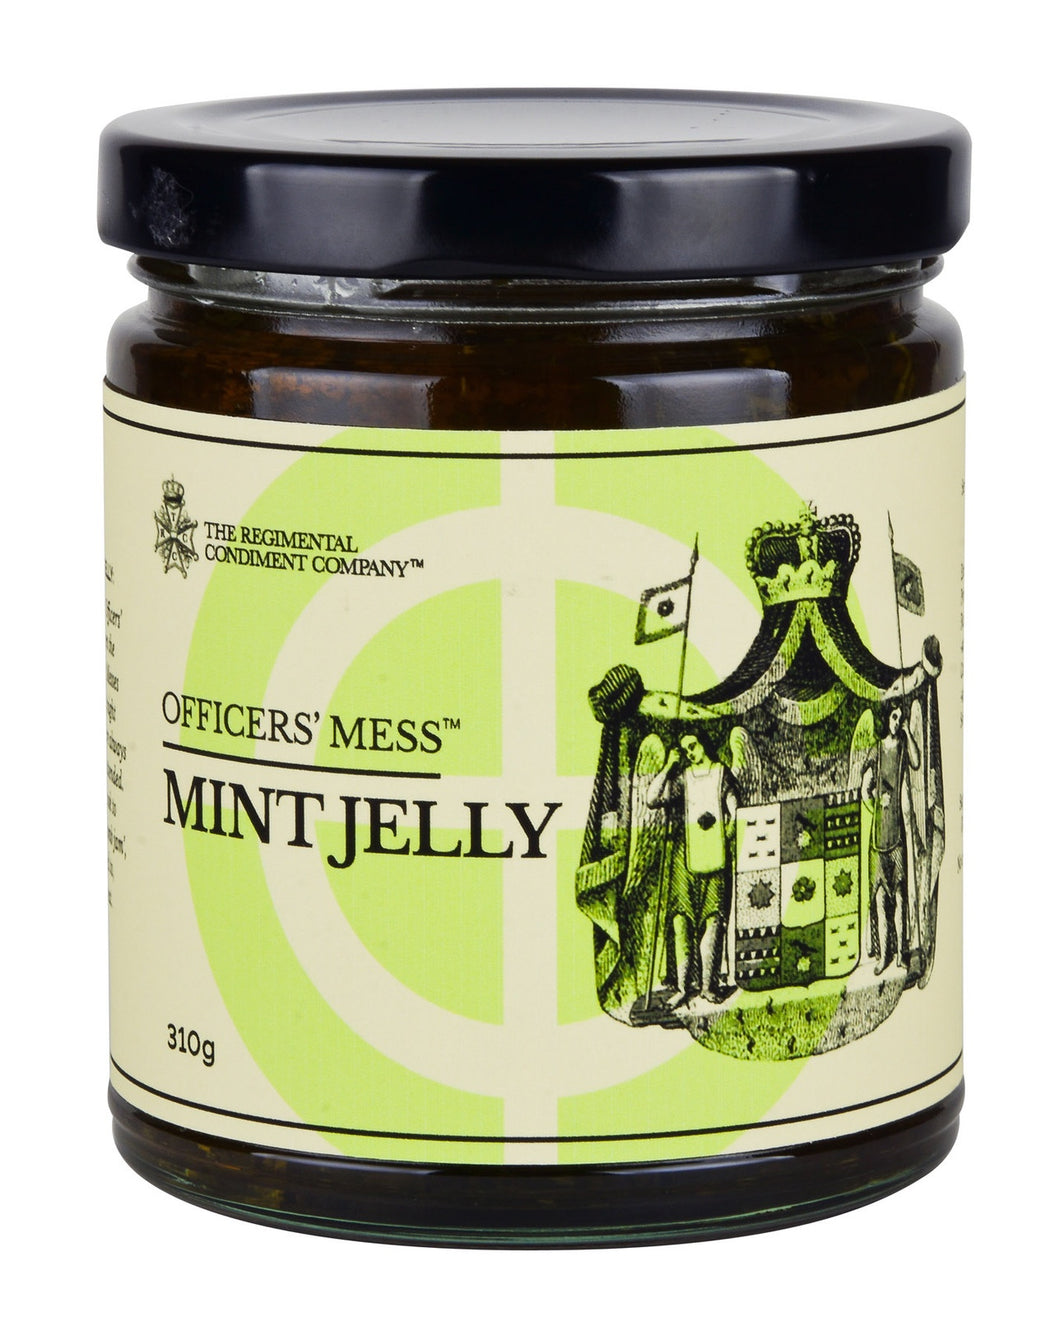 Officers Mess Mint Jelly